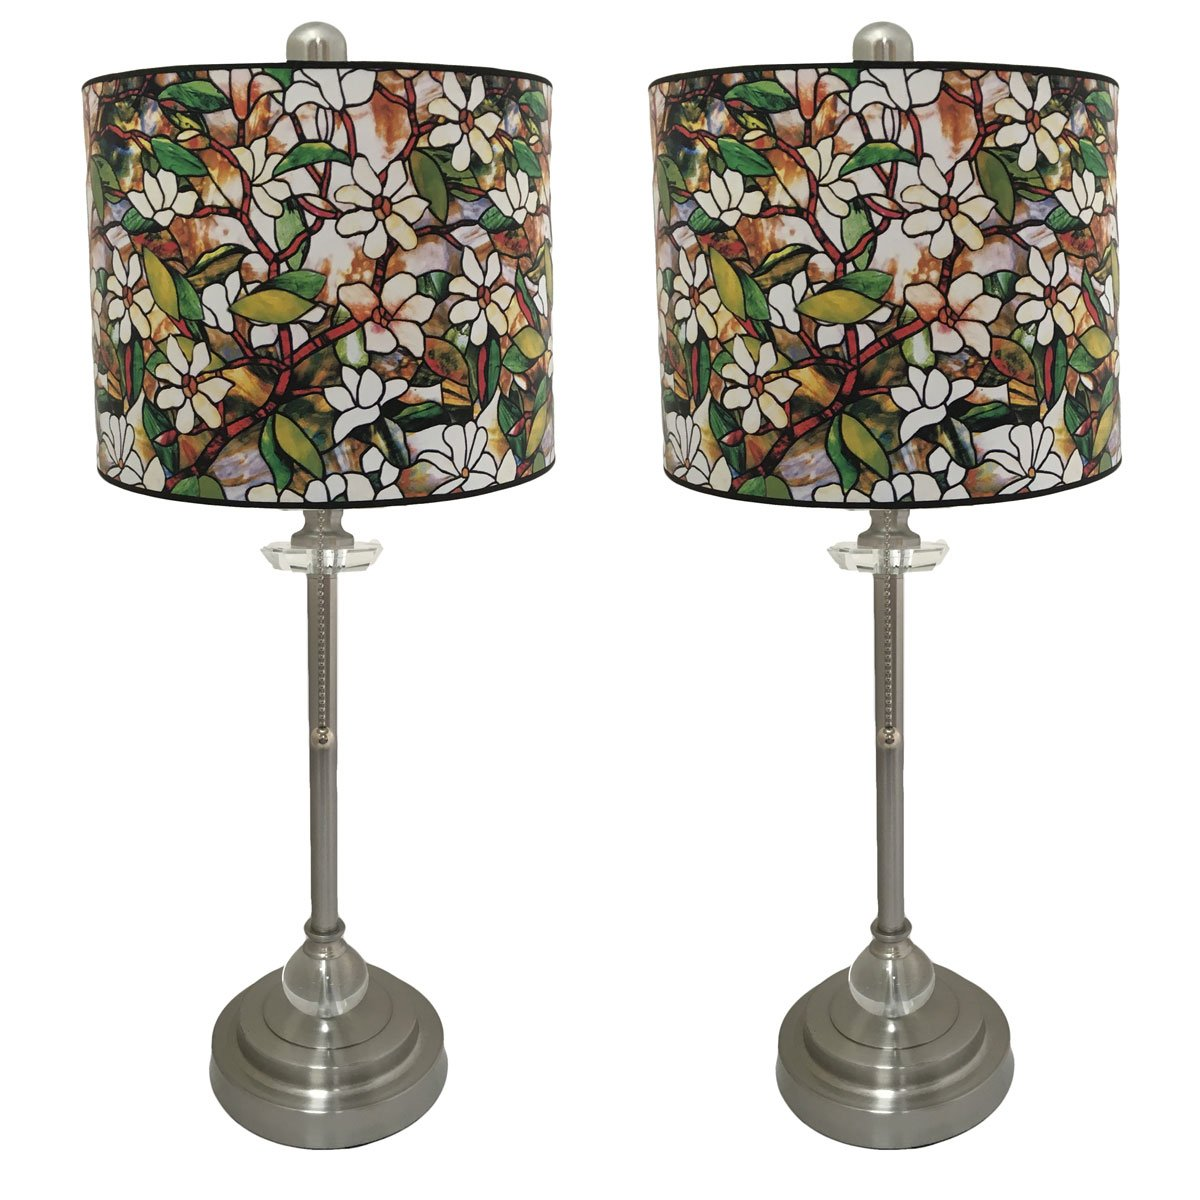 Royal Designs 28'' Crystal and Brushed Nickel Buffet Lamp with Magnolia Stained Glass Design Hard Back Lamp Shade, Set of 2 by Royal Designs, Inc